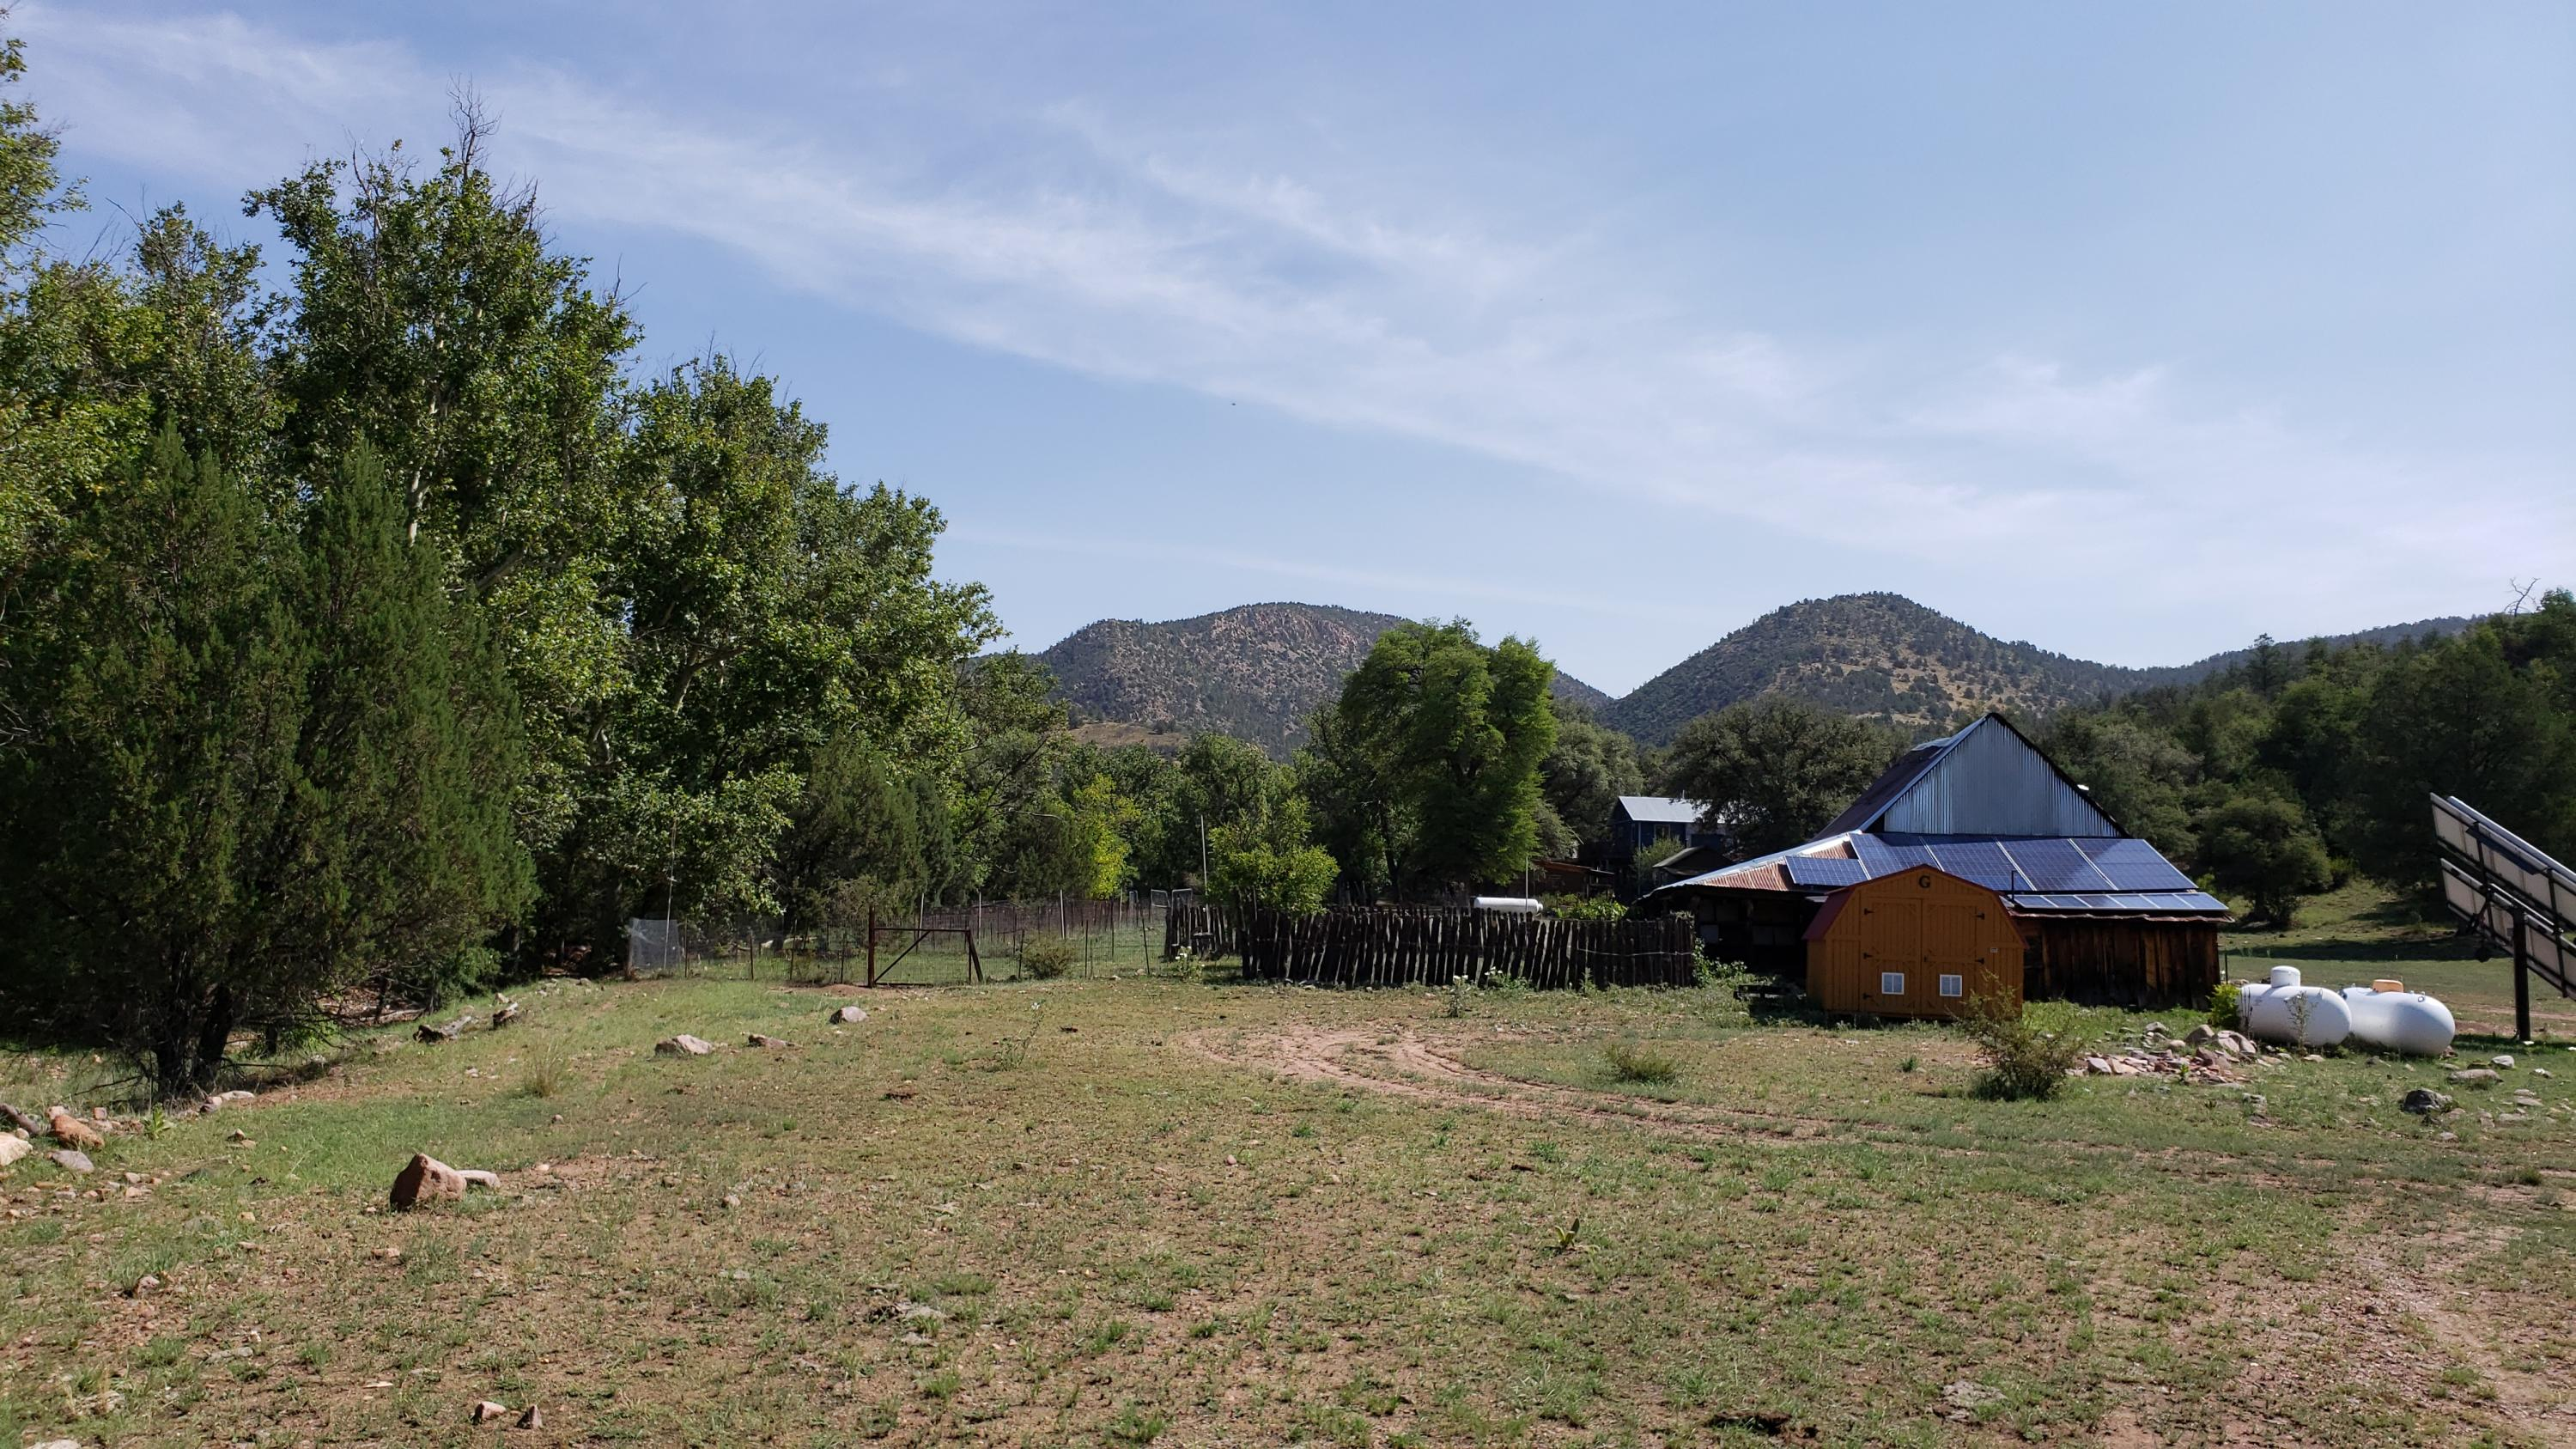 Photo of 3995 W Forest Svc Rd 249, Young, AZ 85554